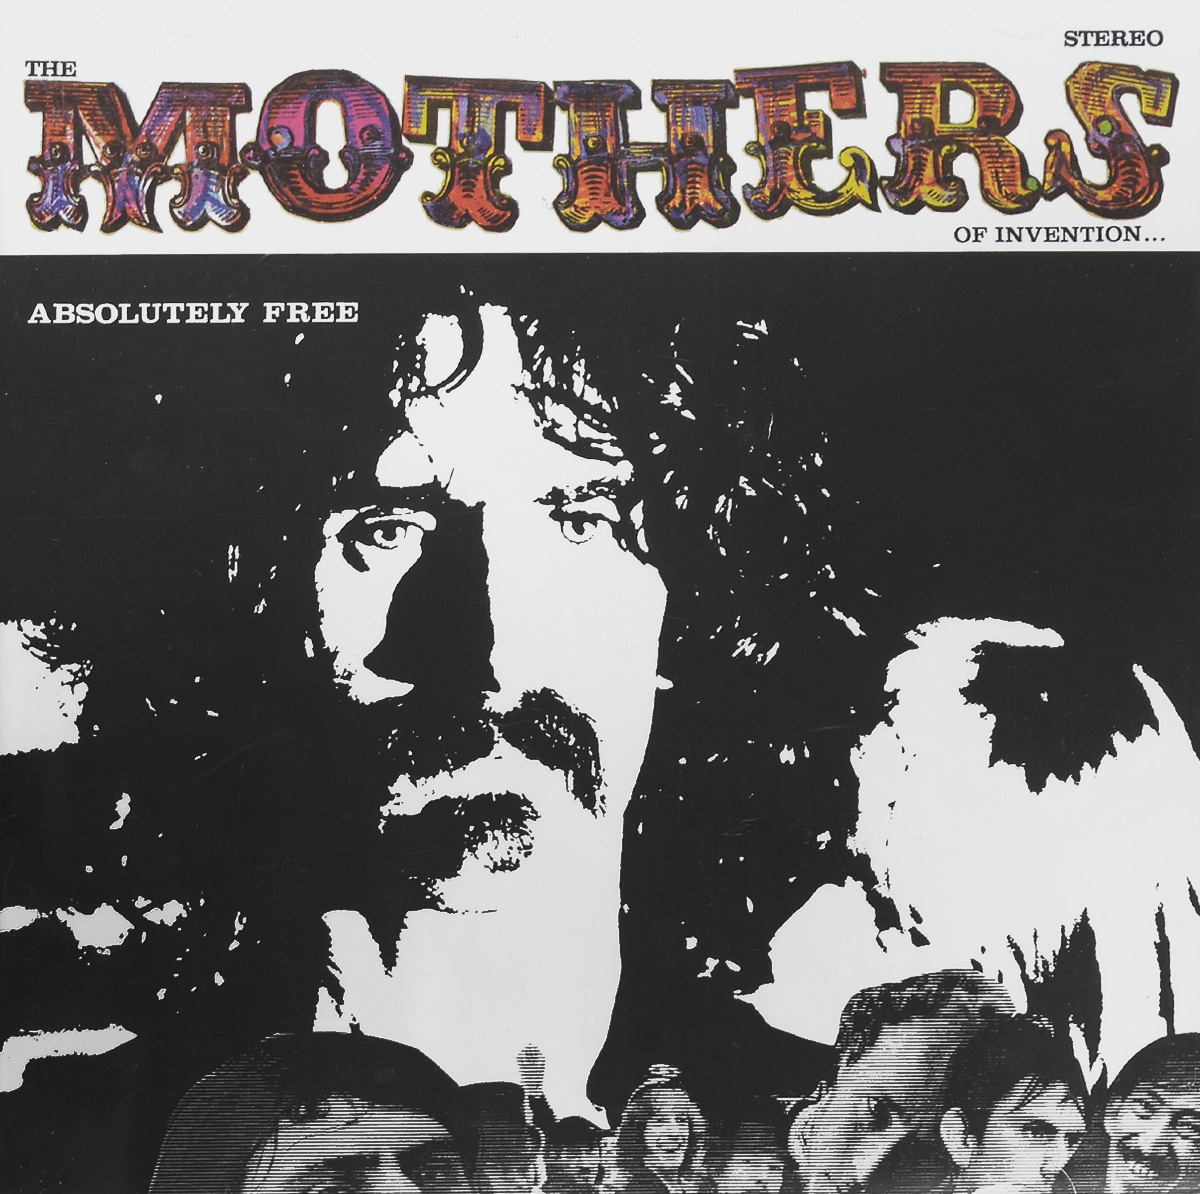 Frank Zappa. The Mothers Of Invention. Absolutely Free